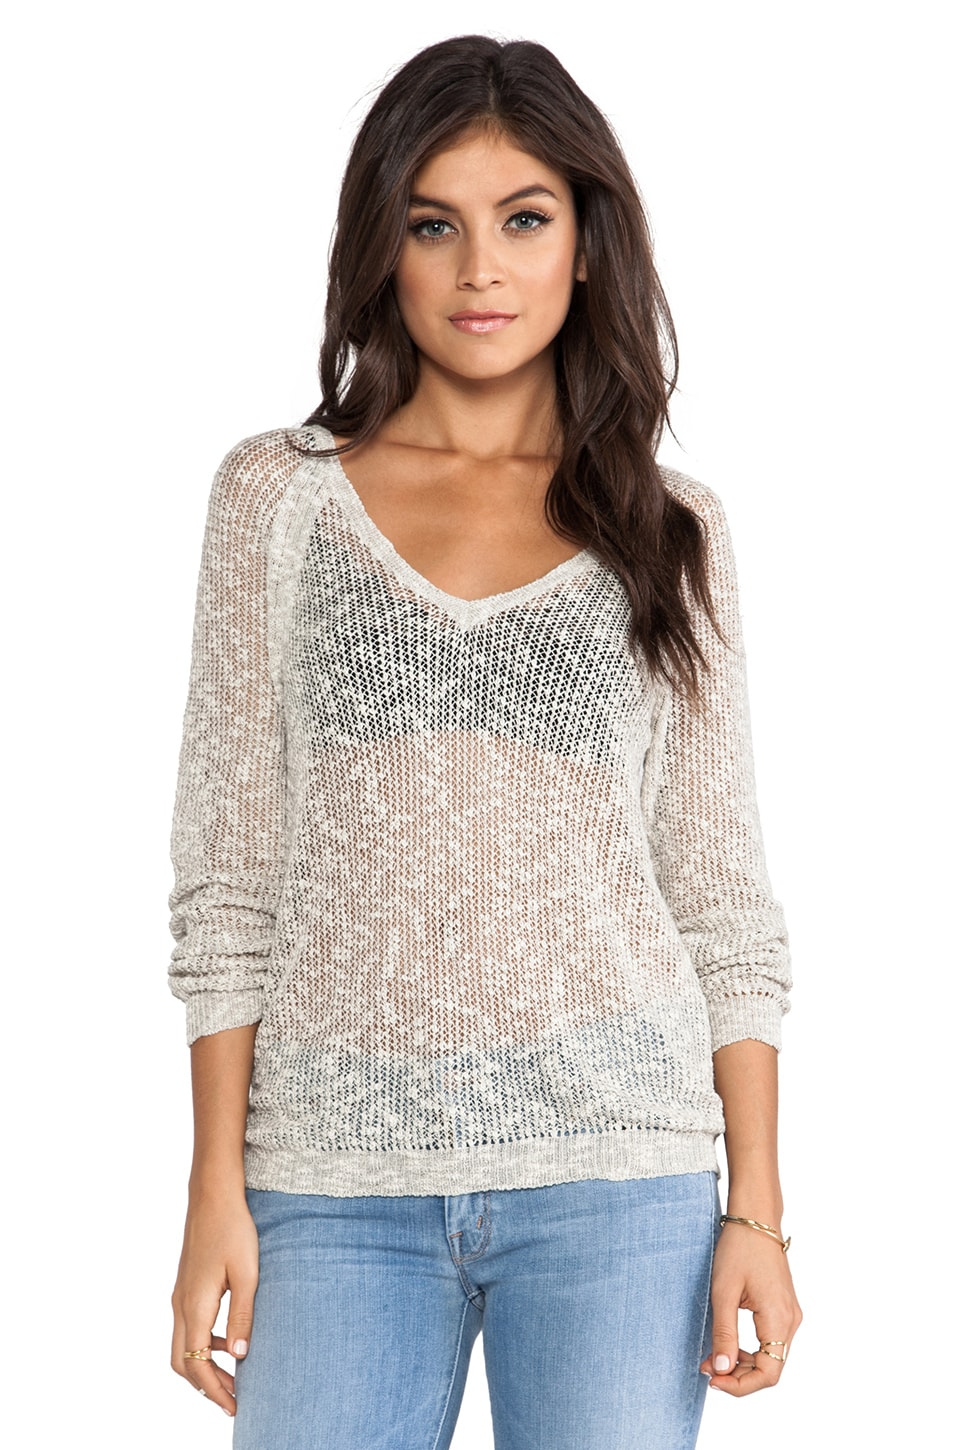 Feel the Piece Willow Pullover Sweater in Natural & Grey